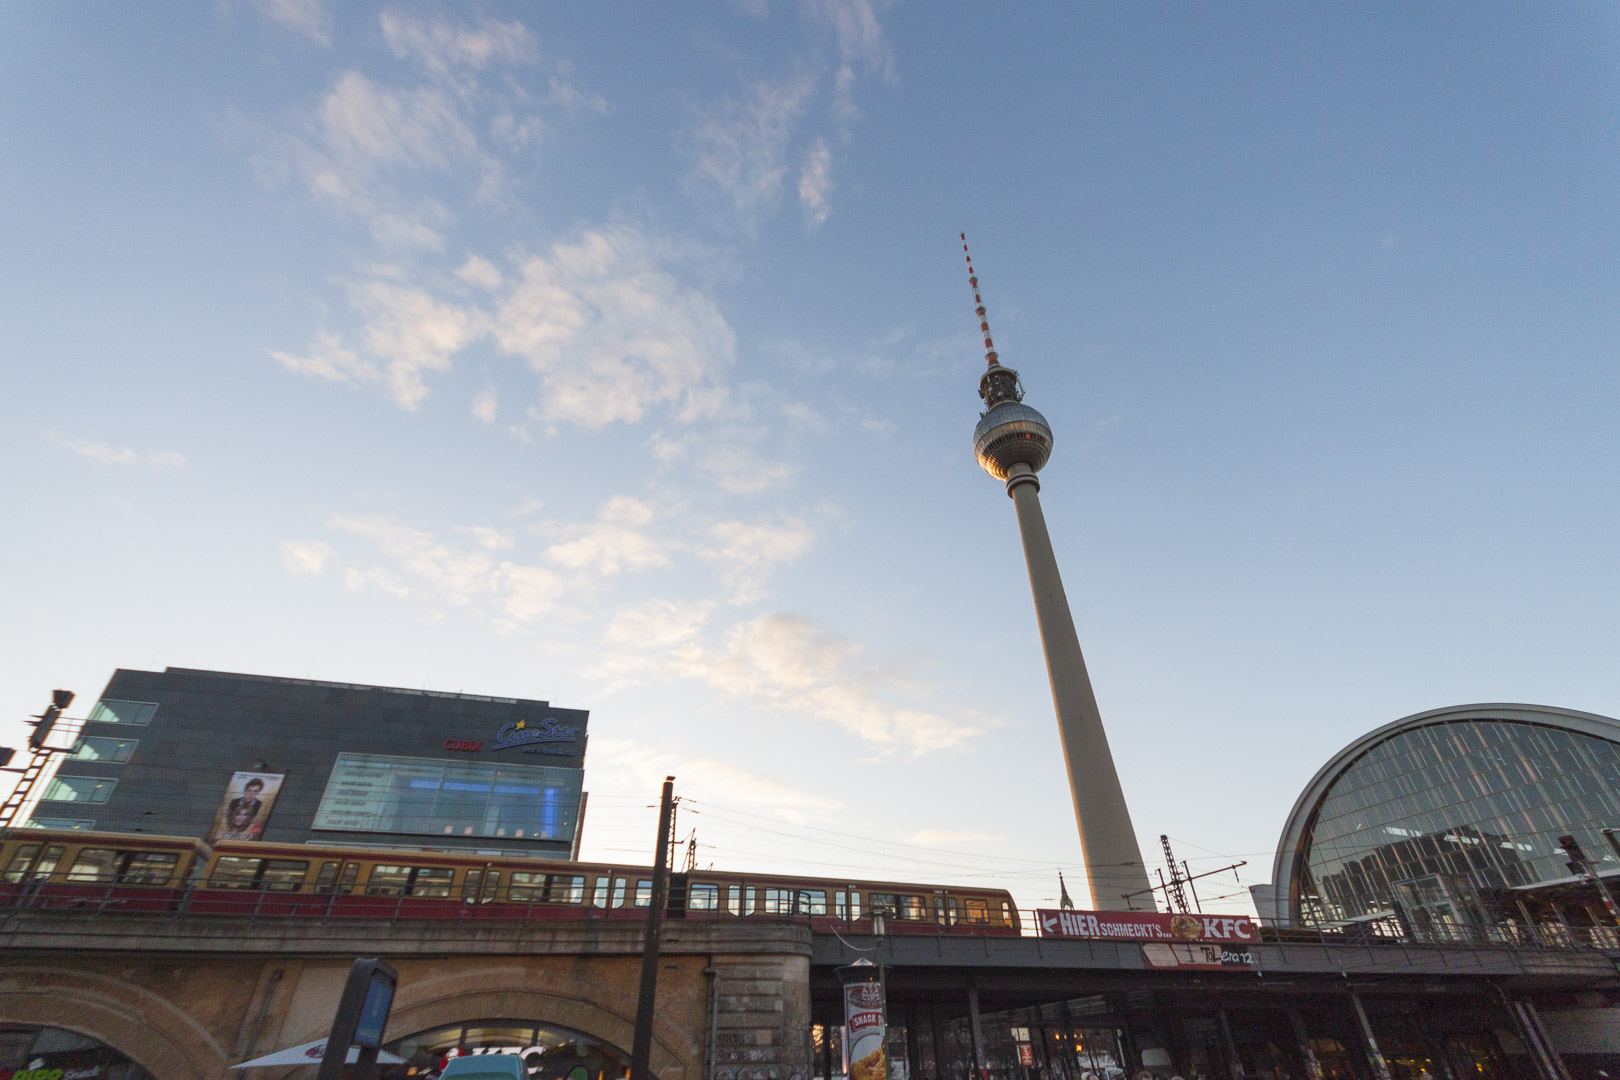 Berlin Alexanderplatz Bahnhof and the Berliner Fernsehturm in Berlin – Germany